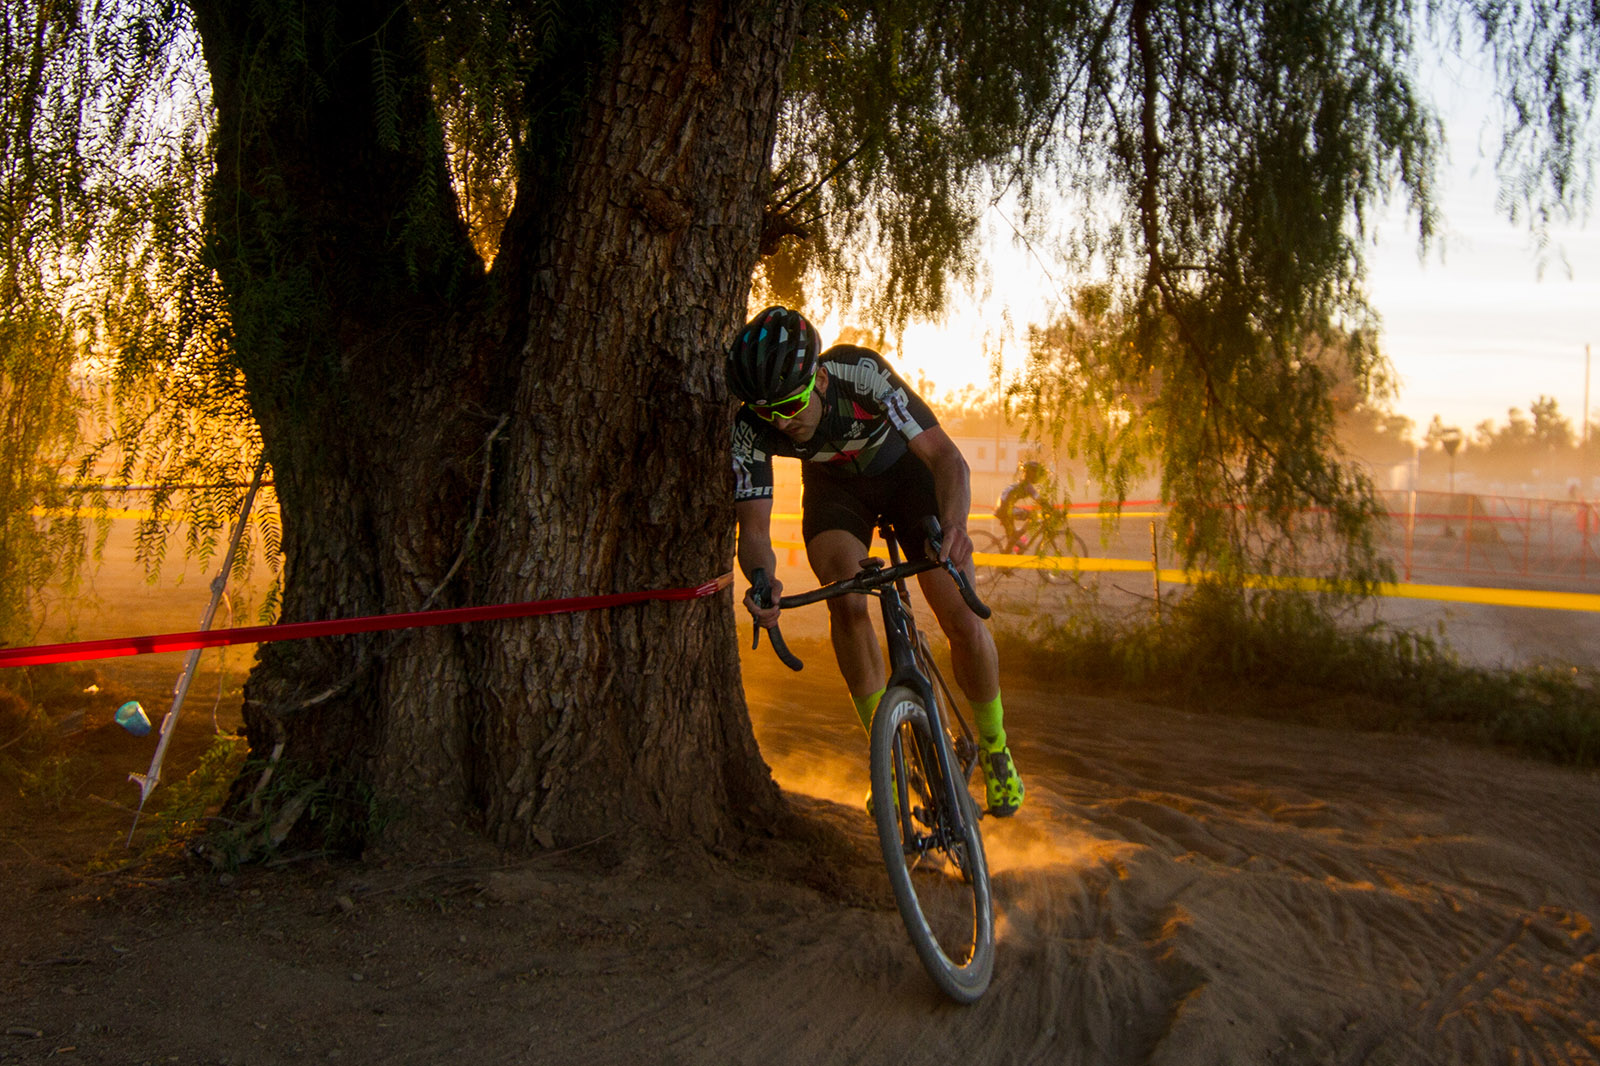 Free Agent Tobin Ortenblad Racing Against the Sun at CXLA Cyclocross Race